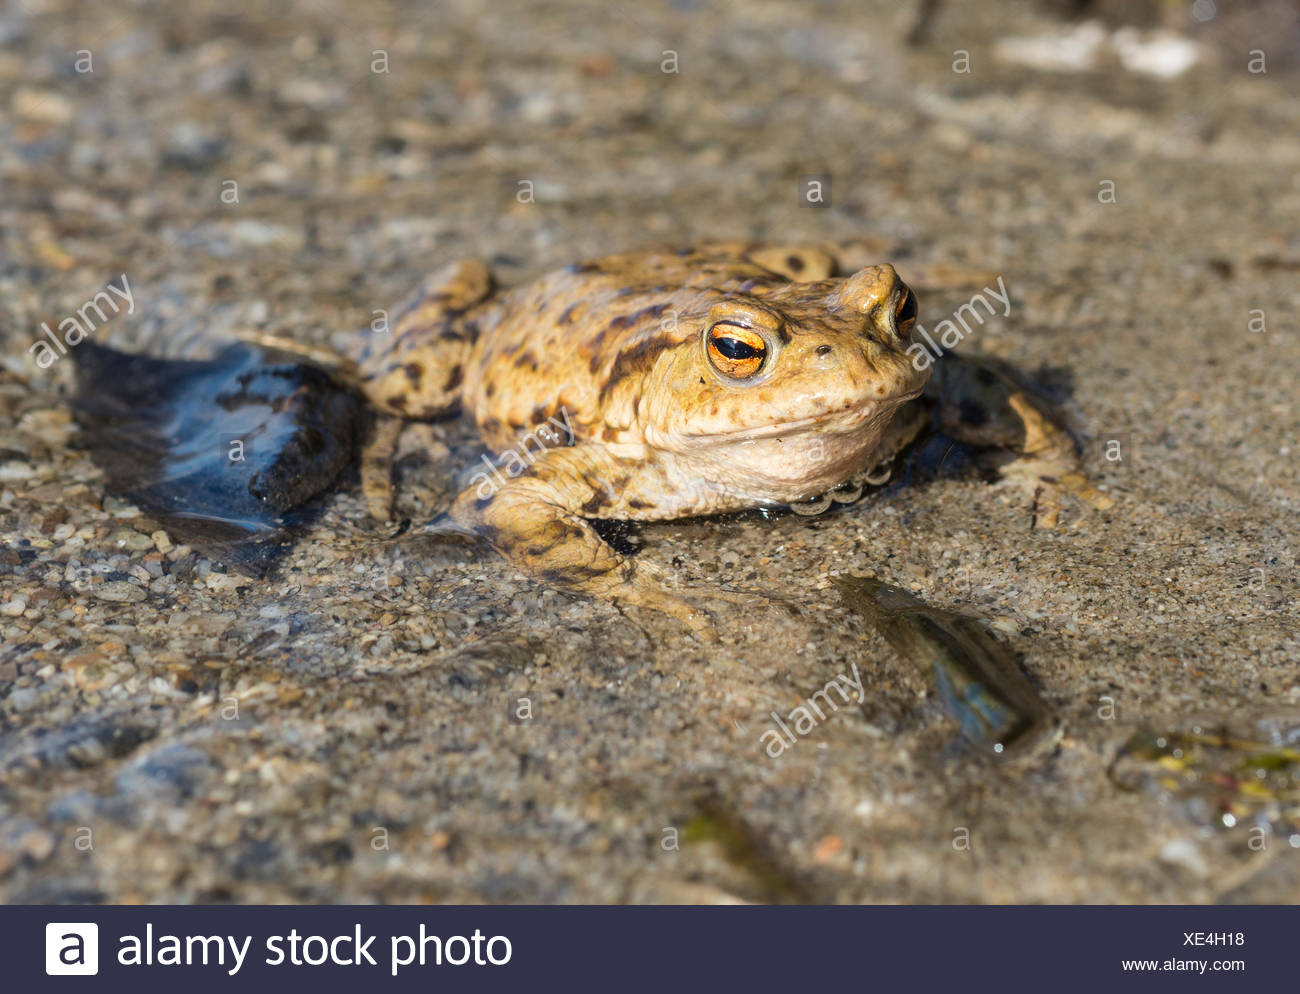 Common toad (Bufo bufo) in water, mating season, Stallauer Weiher, Upper Bavaria, Bavaria, Germany Stock Photo